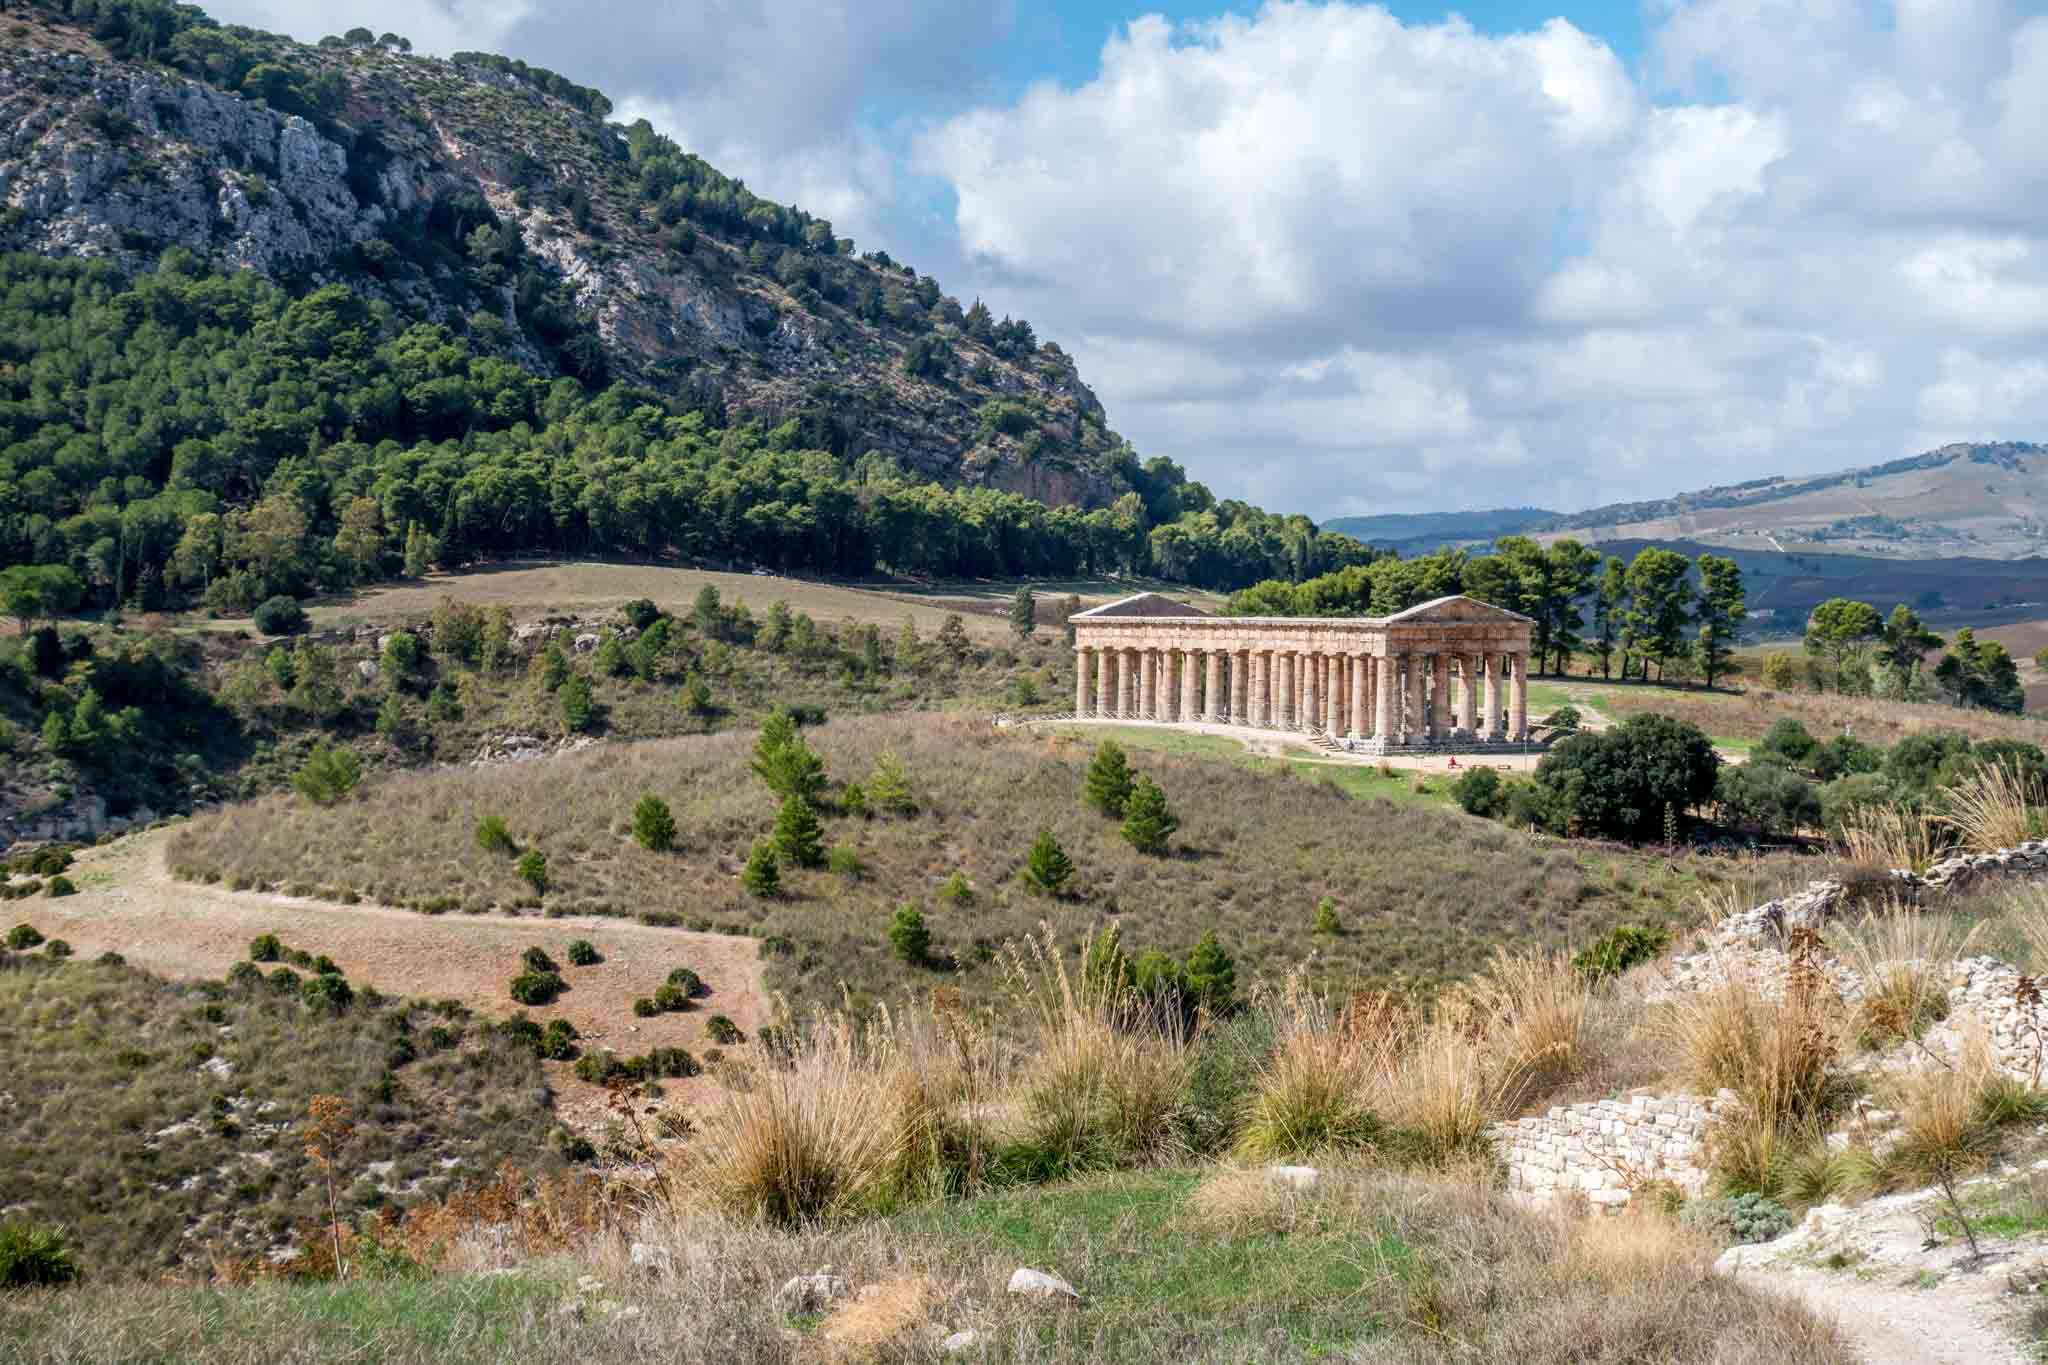 The ancient Doric Temple at Segesta is one of the highlights to see on a Sicily road trip